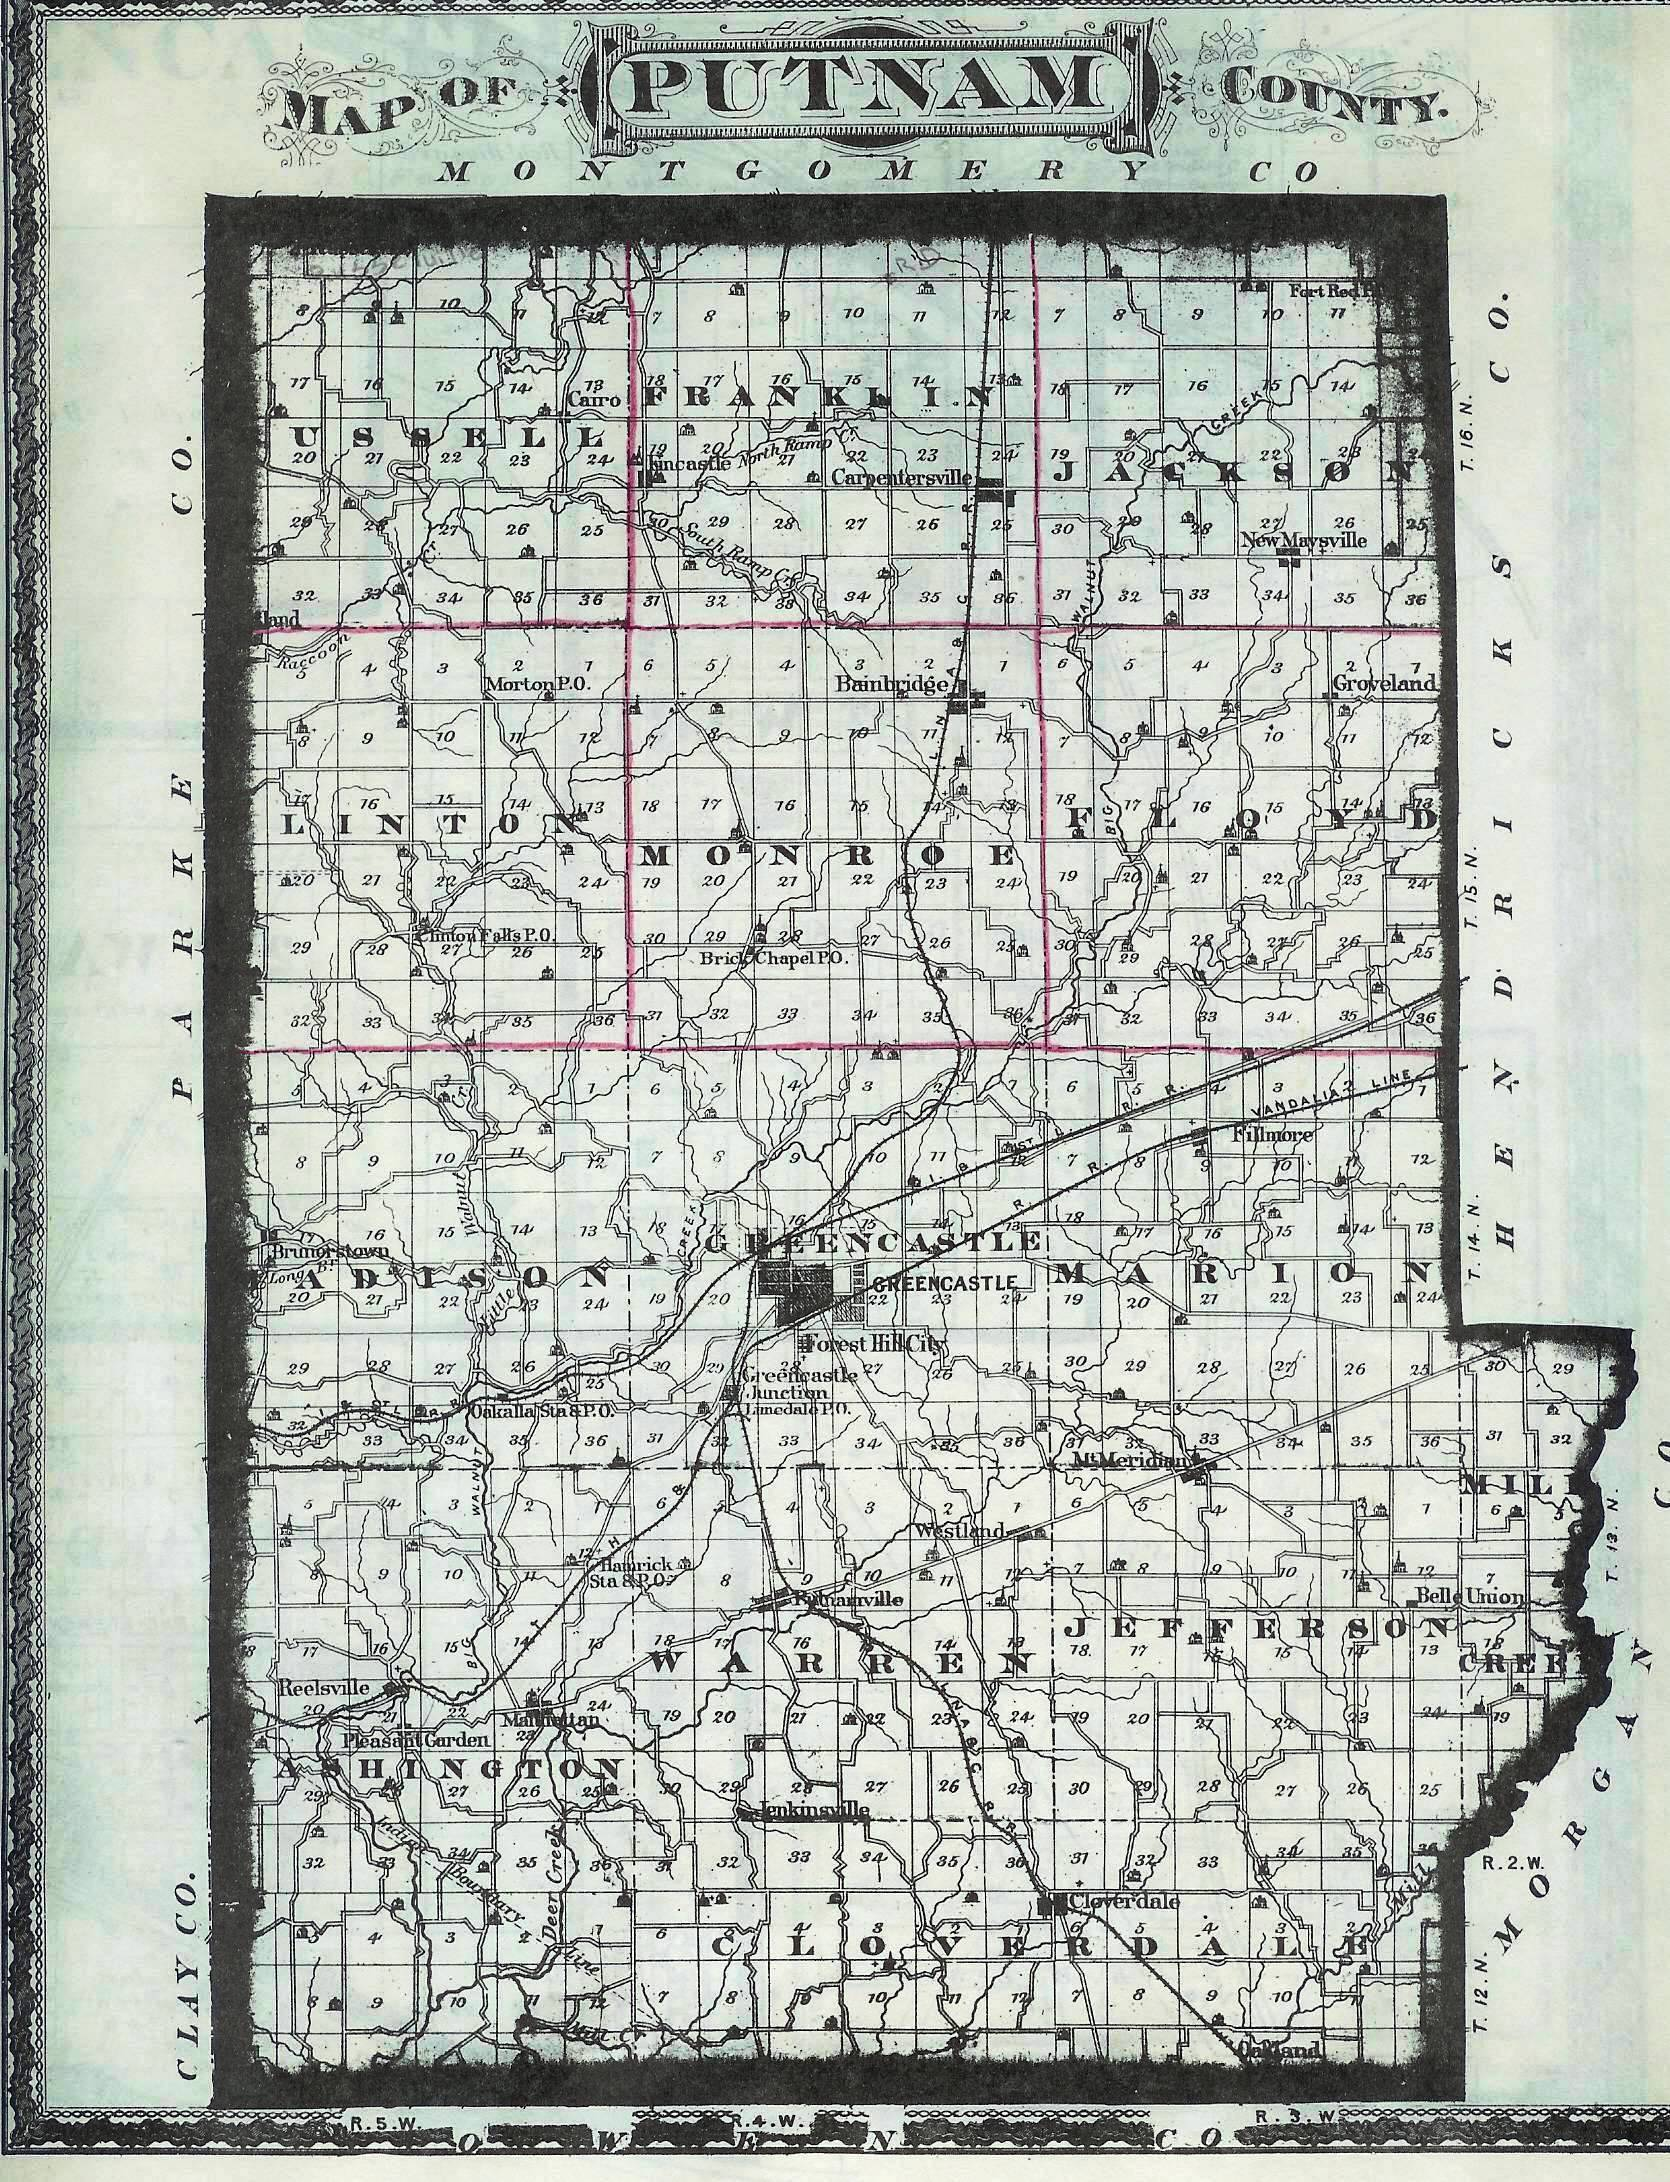 MAPS OF PUTNAM COUNTY CEMETERIES